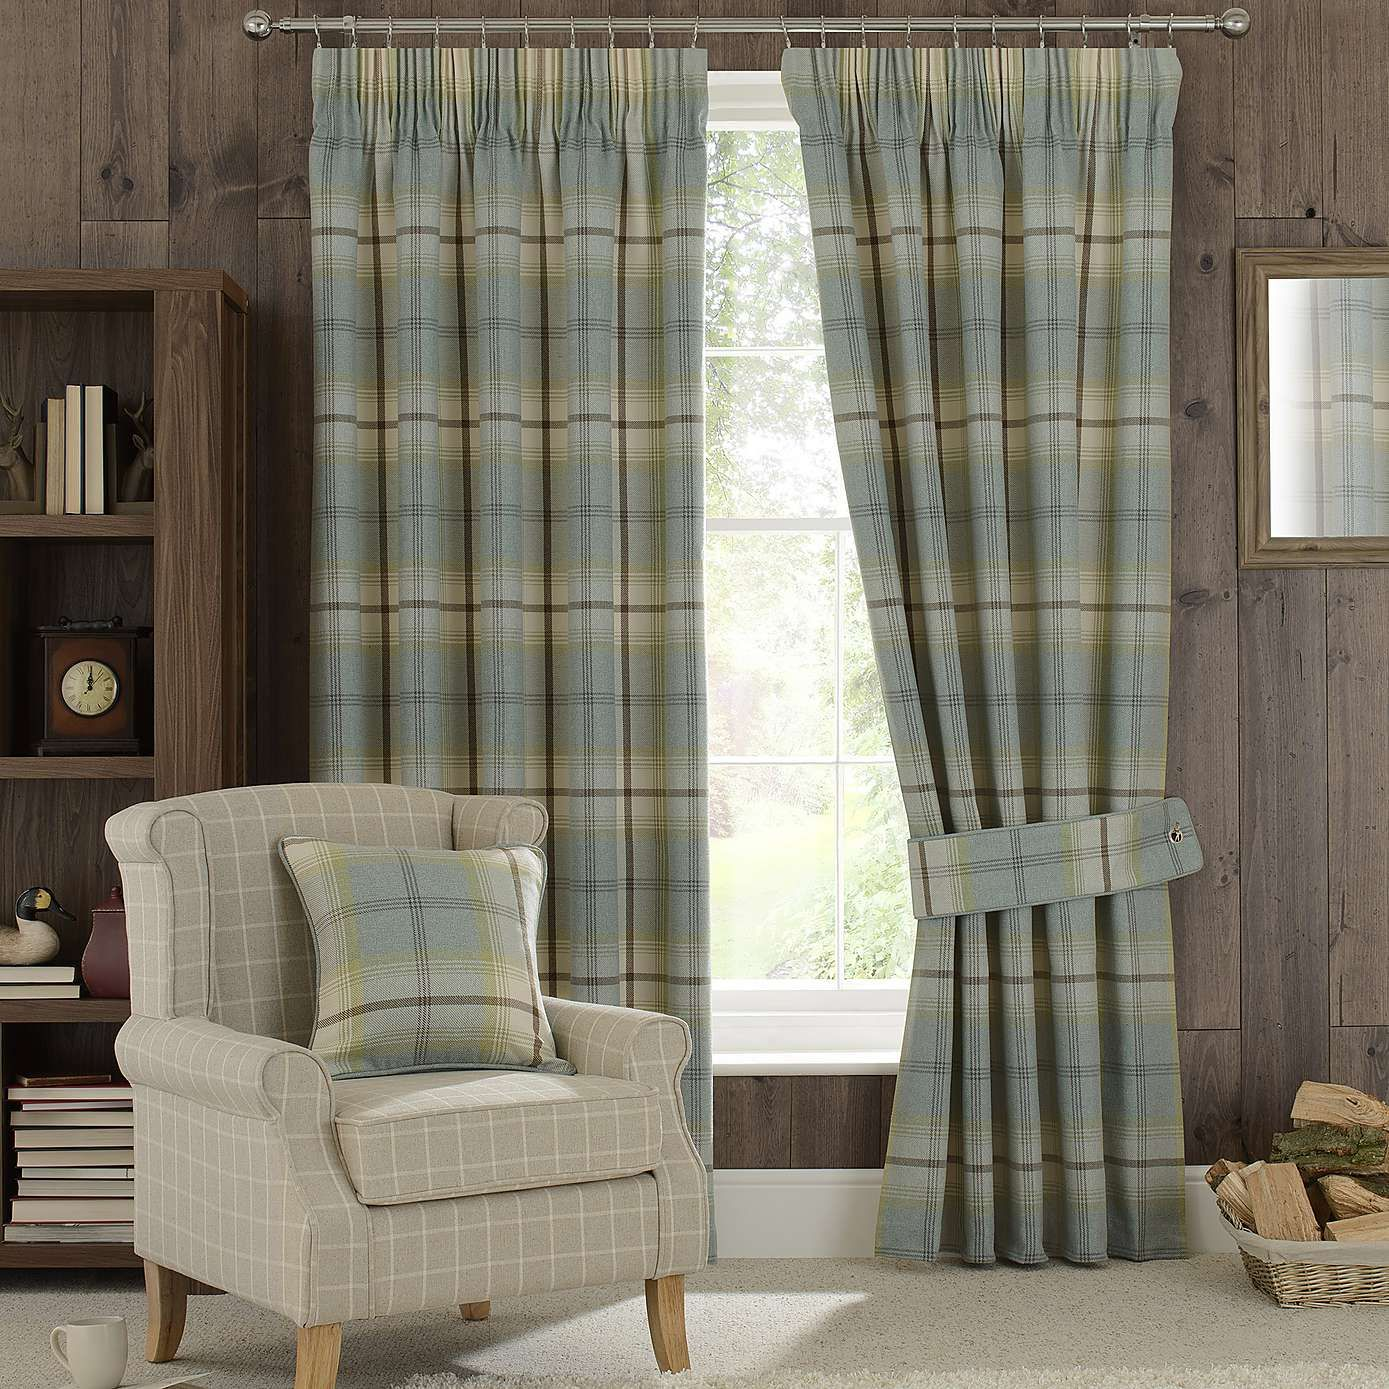 Duck Egg Highland Check Lined Pencil Pleat Curtains